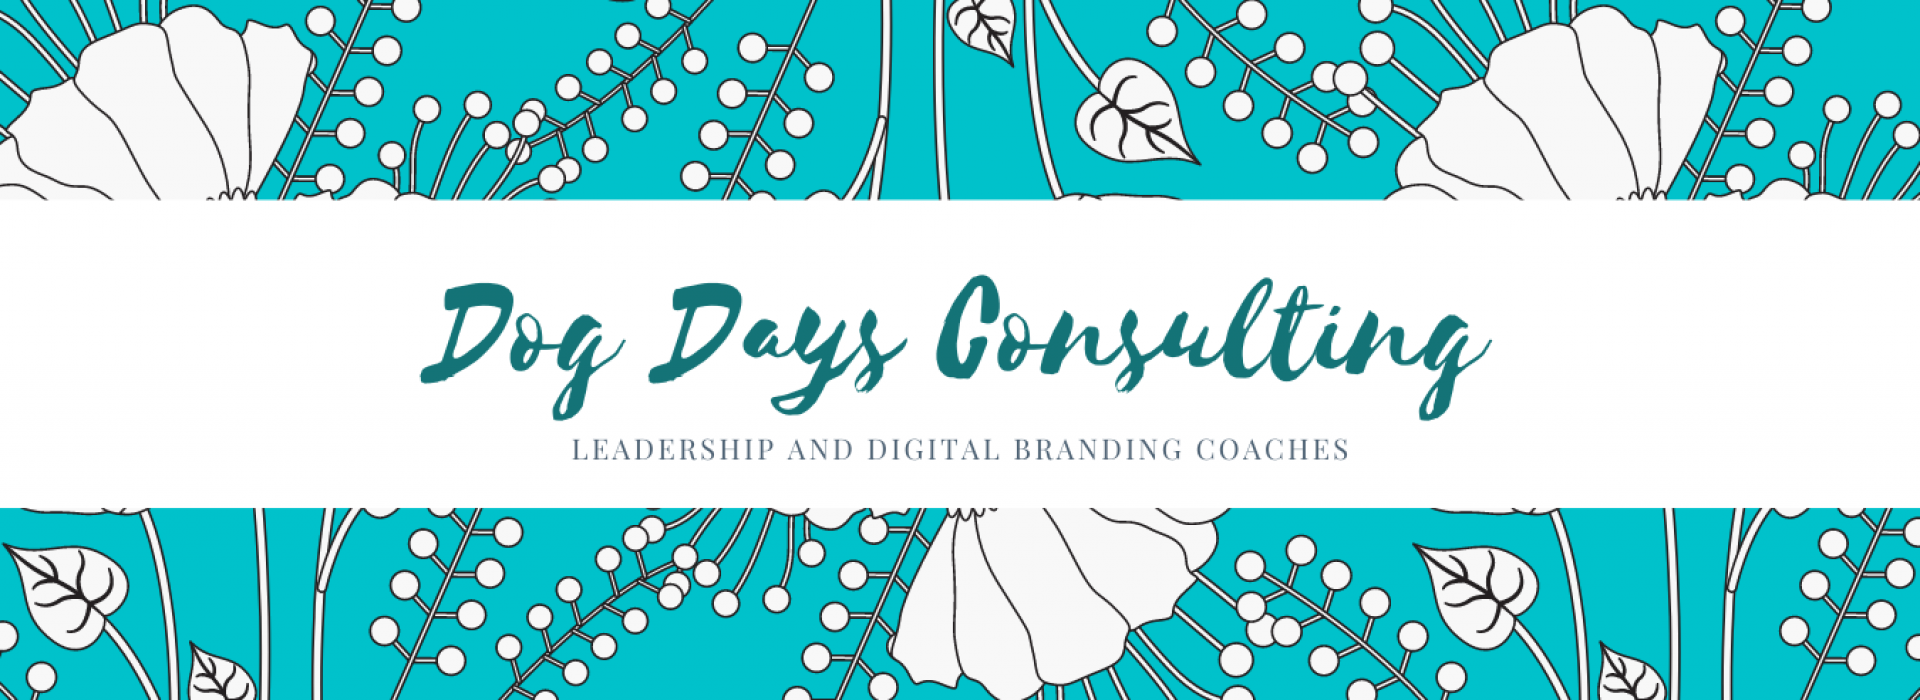 Dog Days Consulting